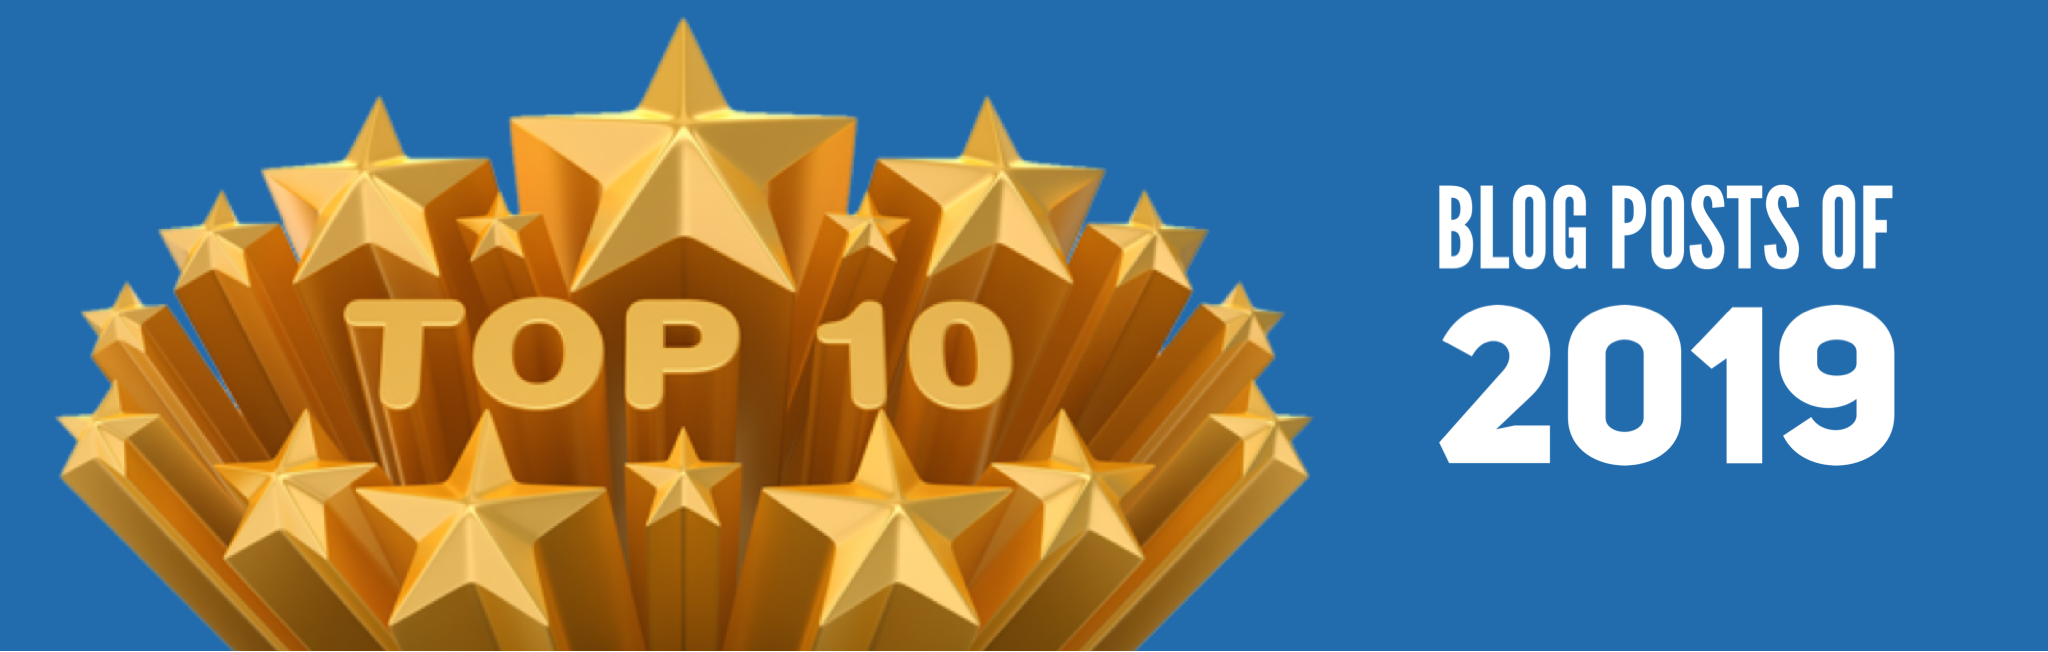 10 top compliance blog posts 2019